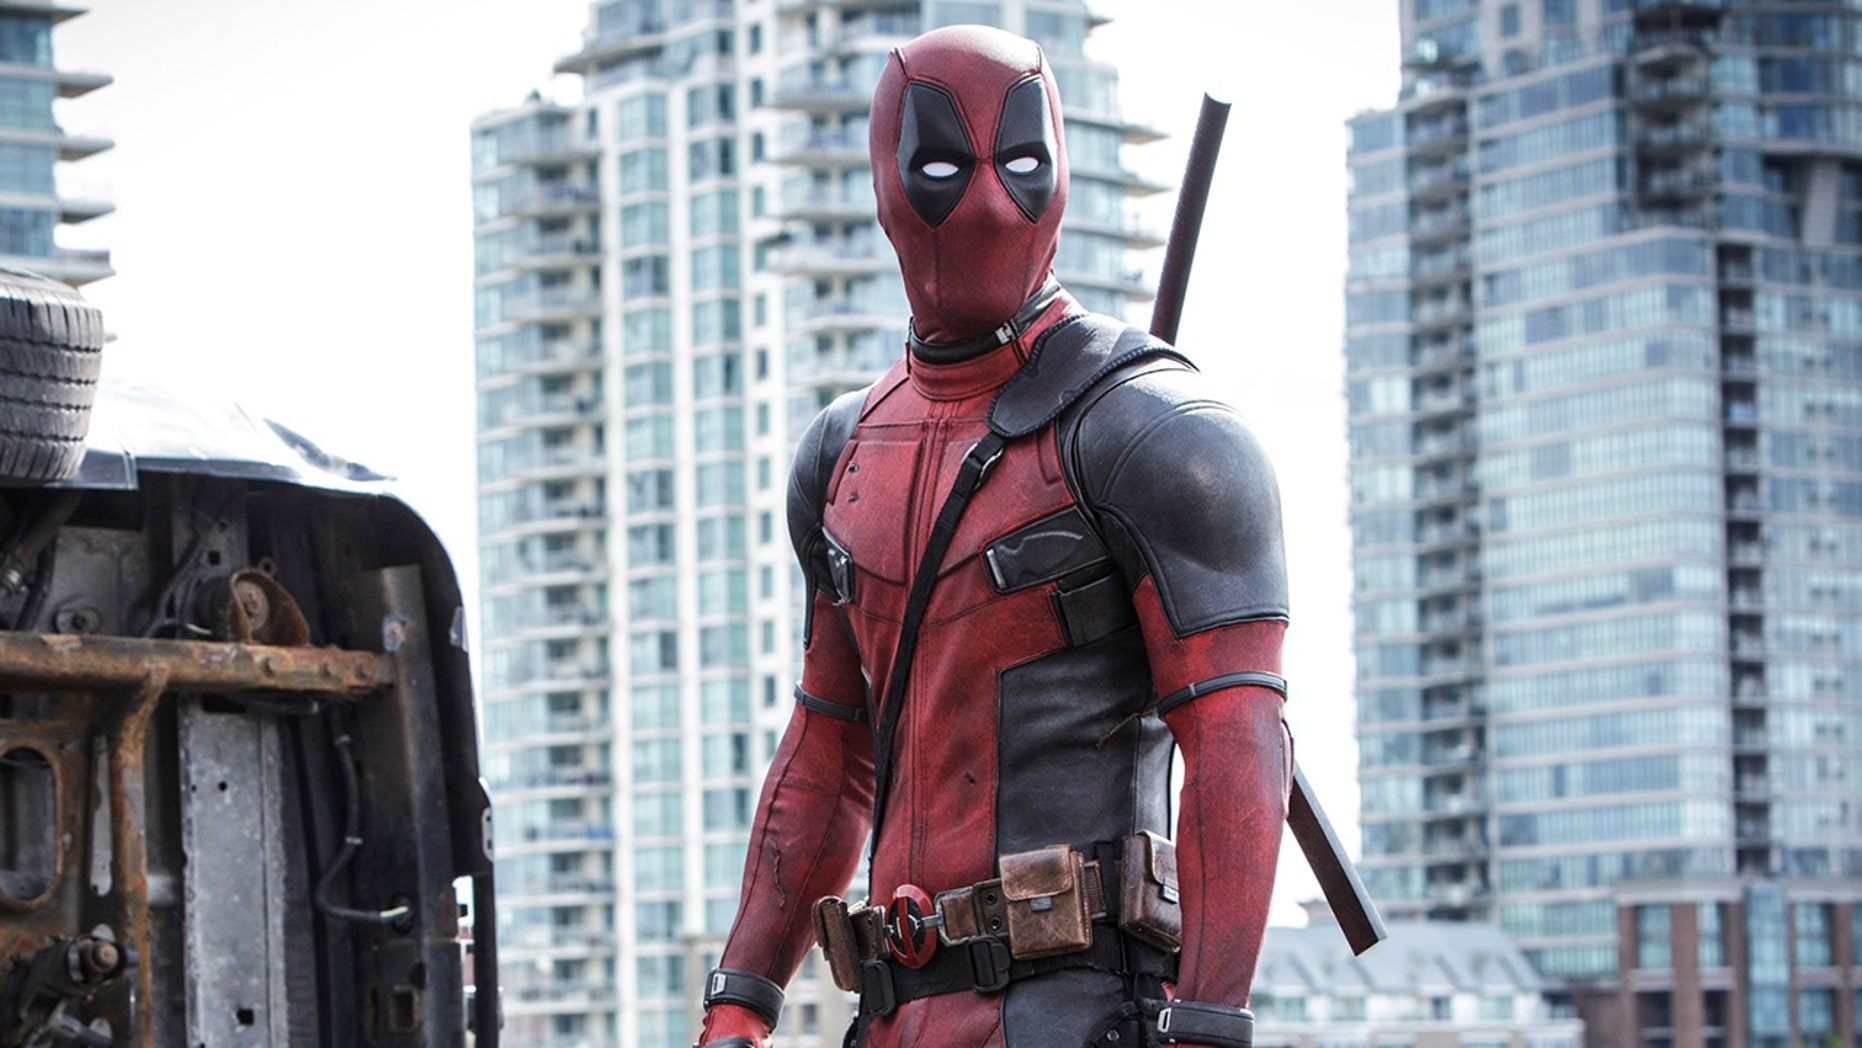 FX has scrapped plans for an animated 'Deadpool' series.